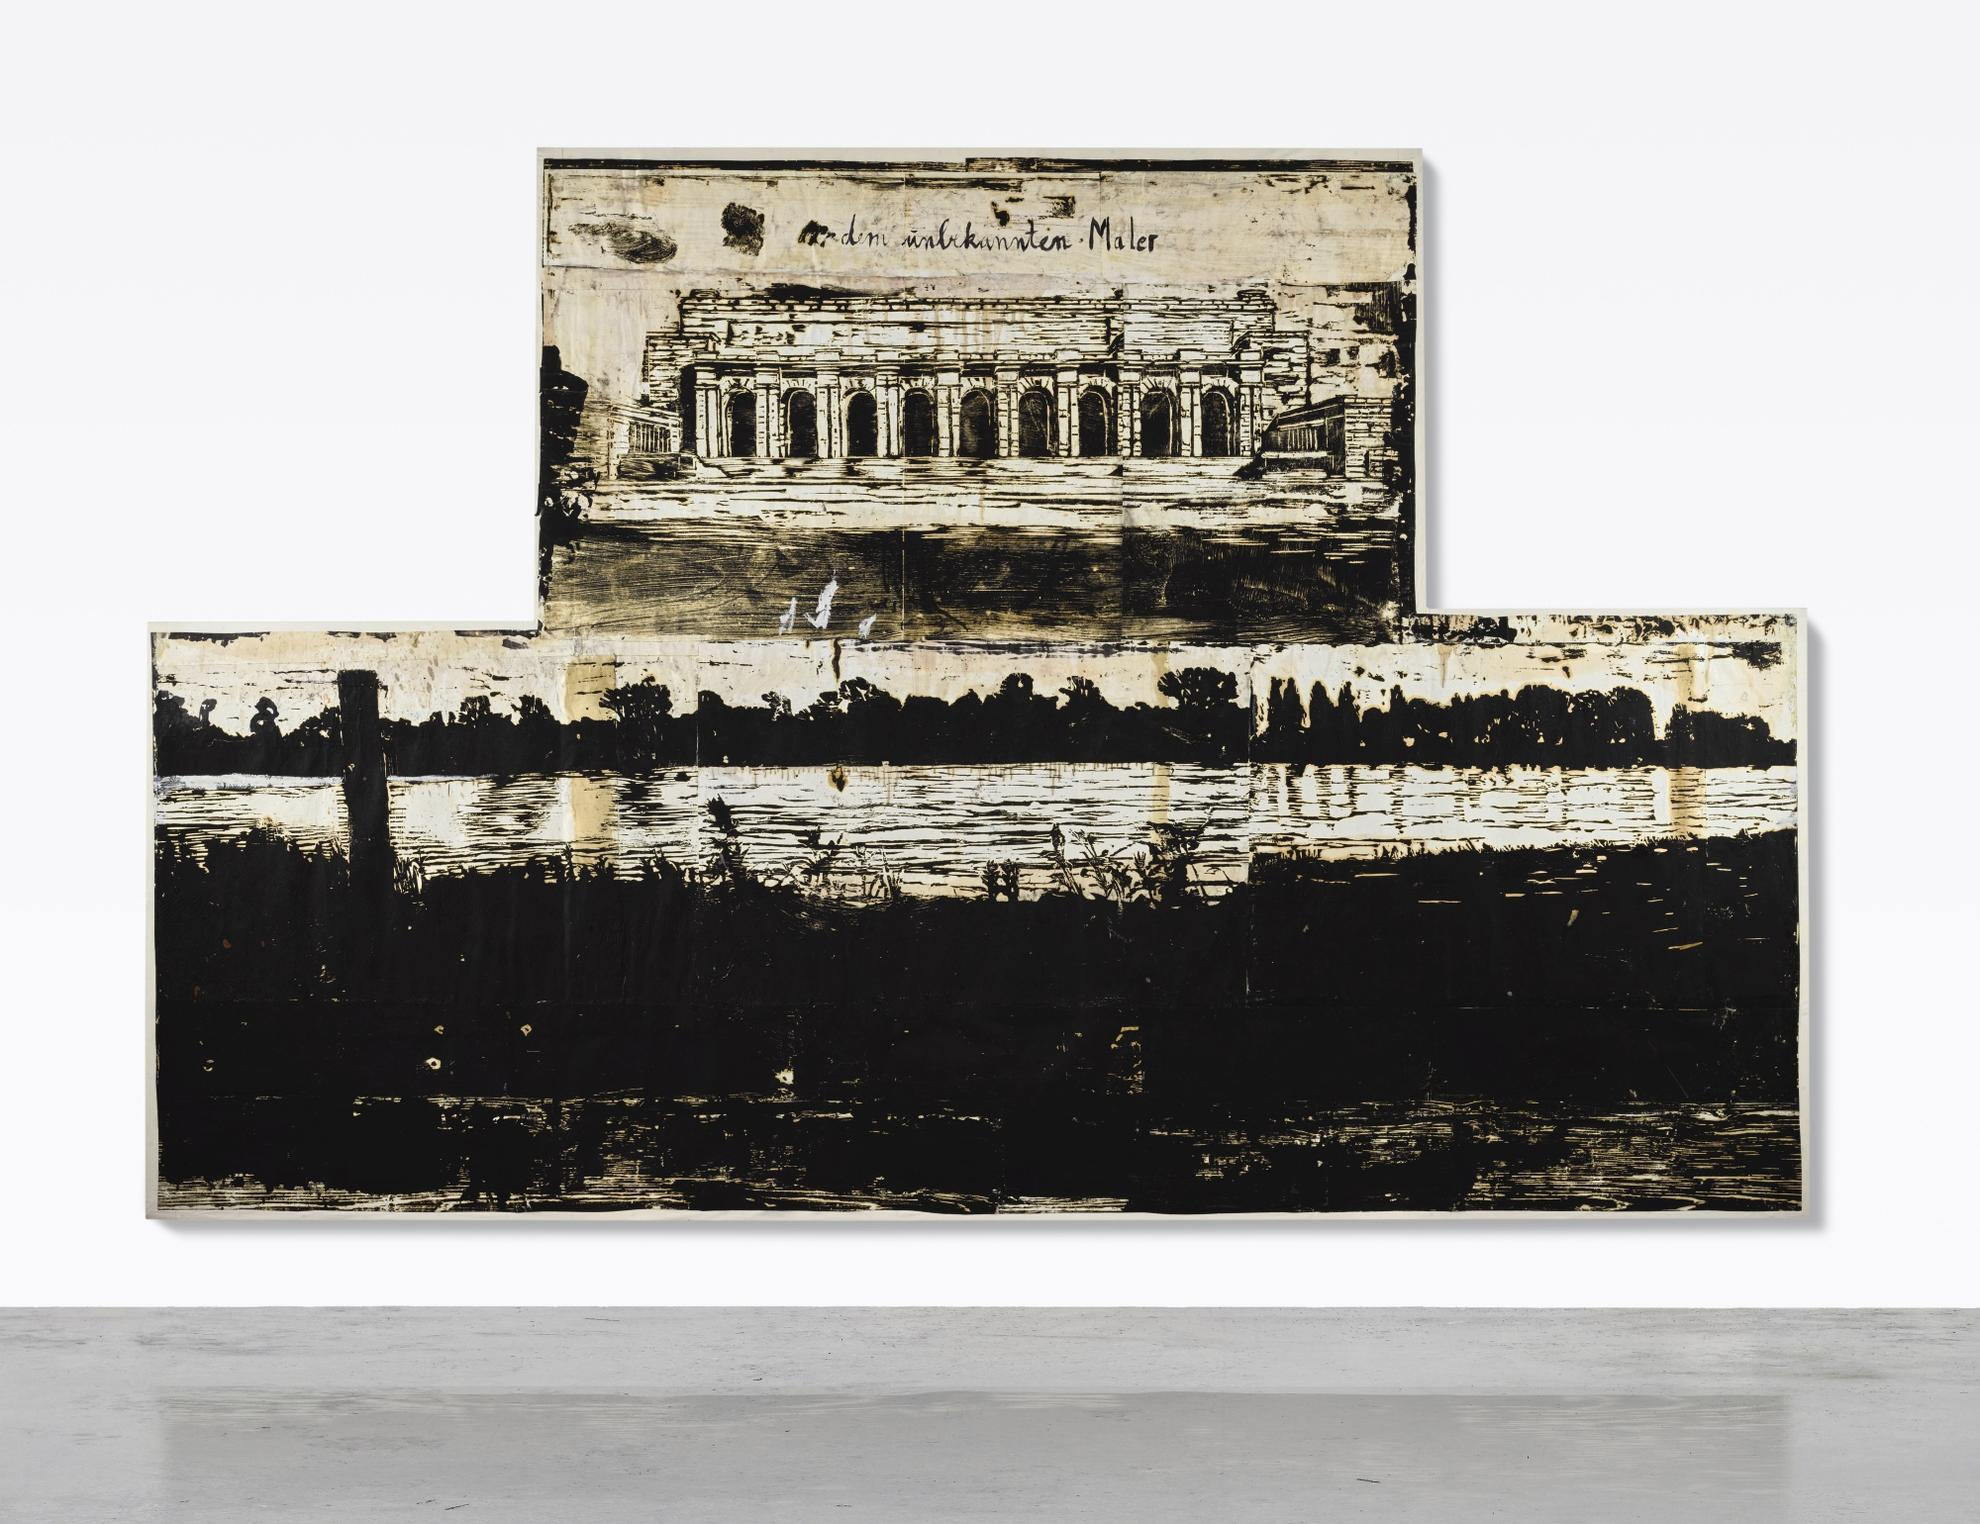 Anselm Kiefer-Dem Unbekannten Maler (To The Unknown Painter)-1982